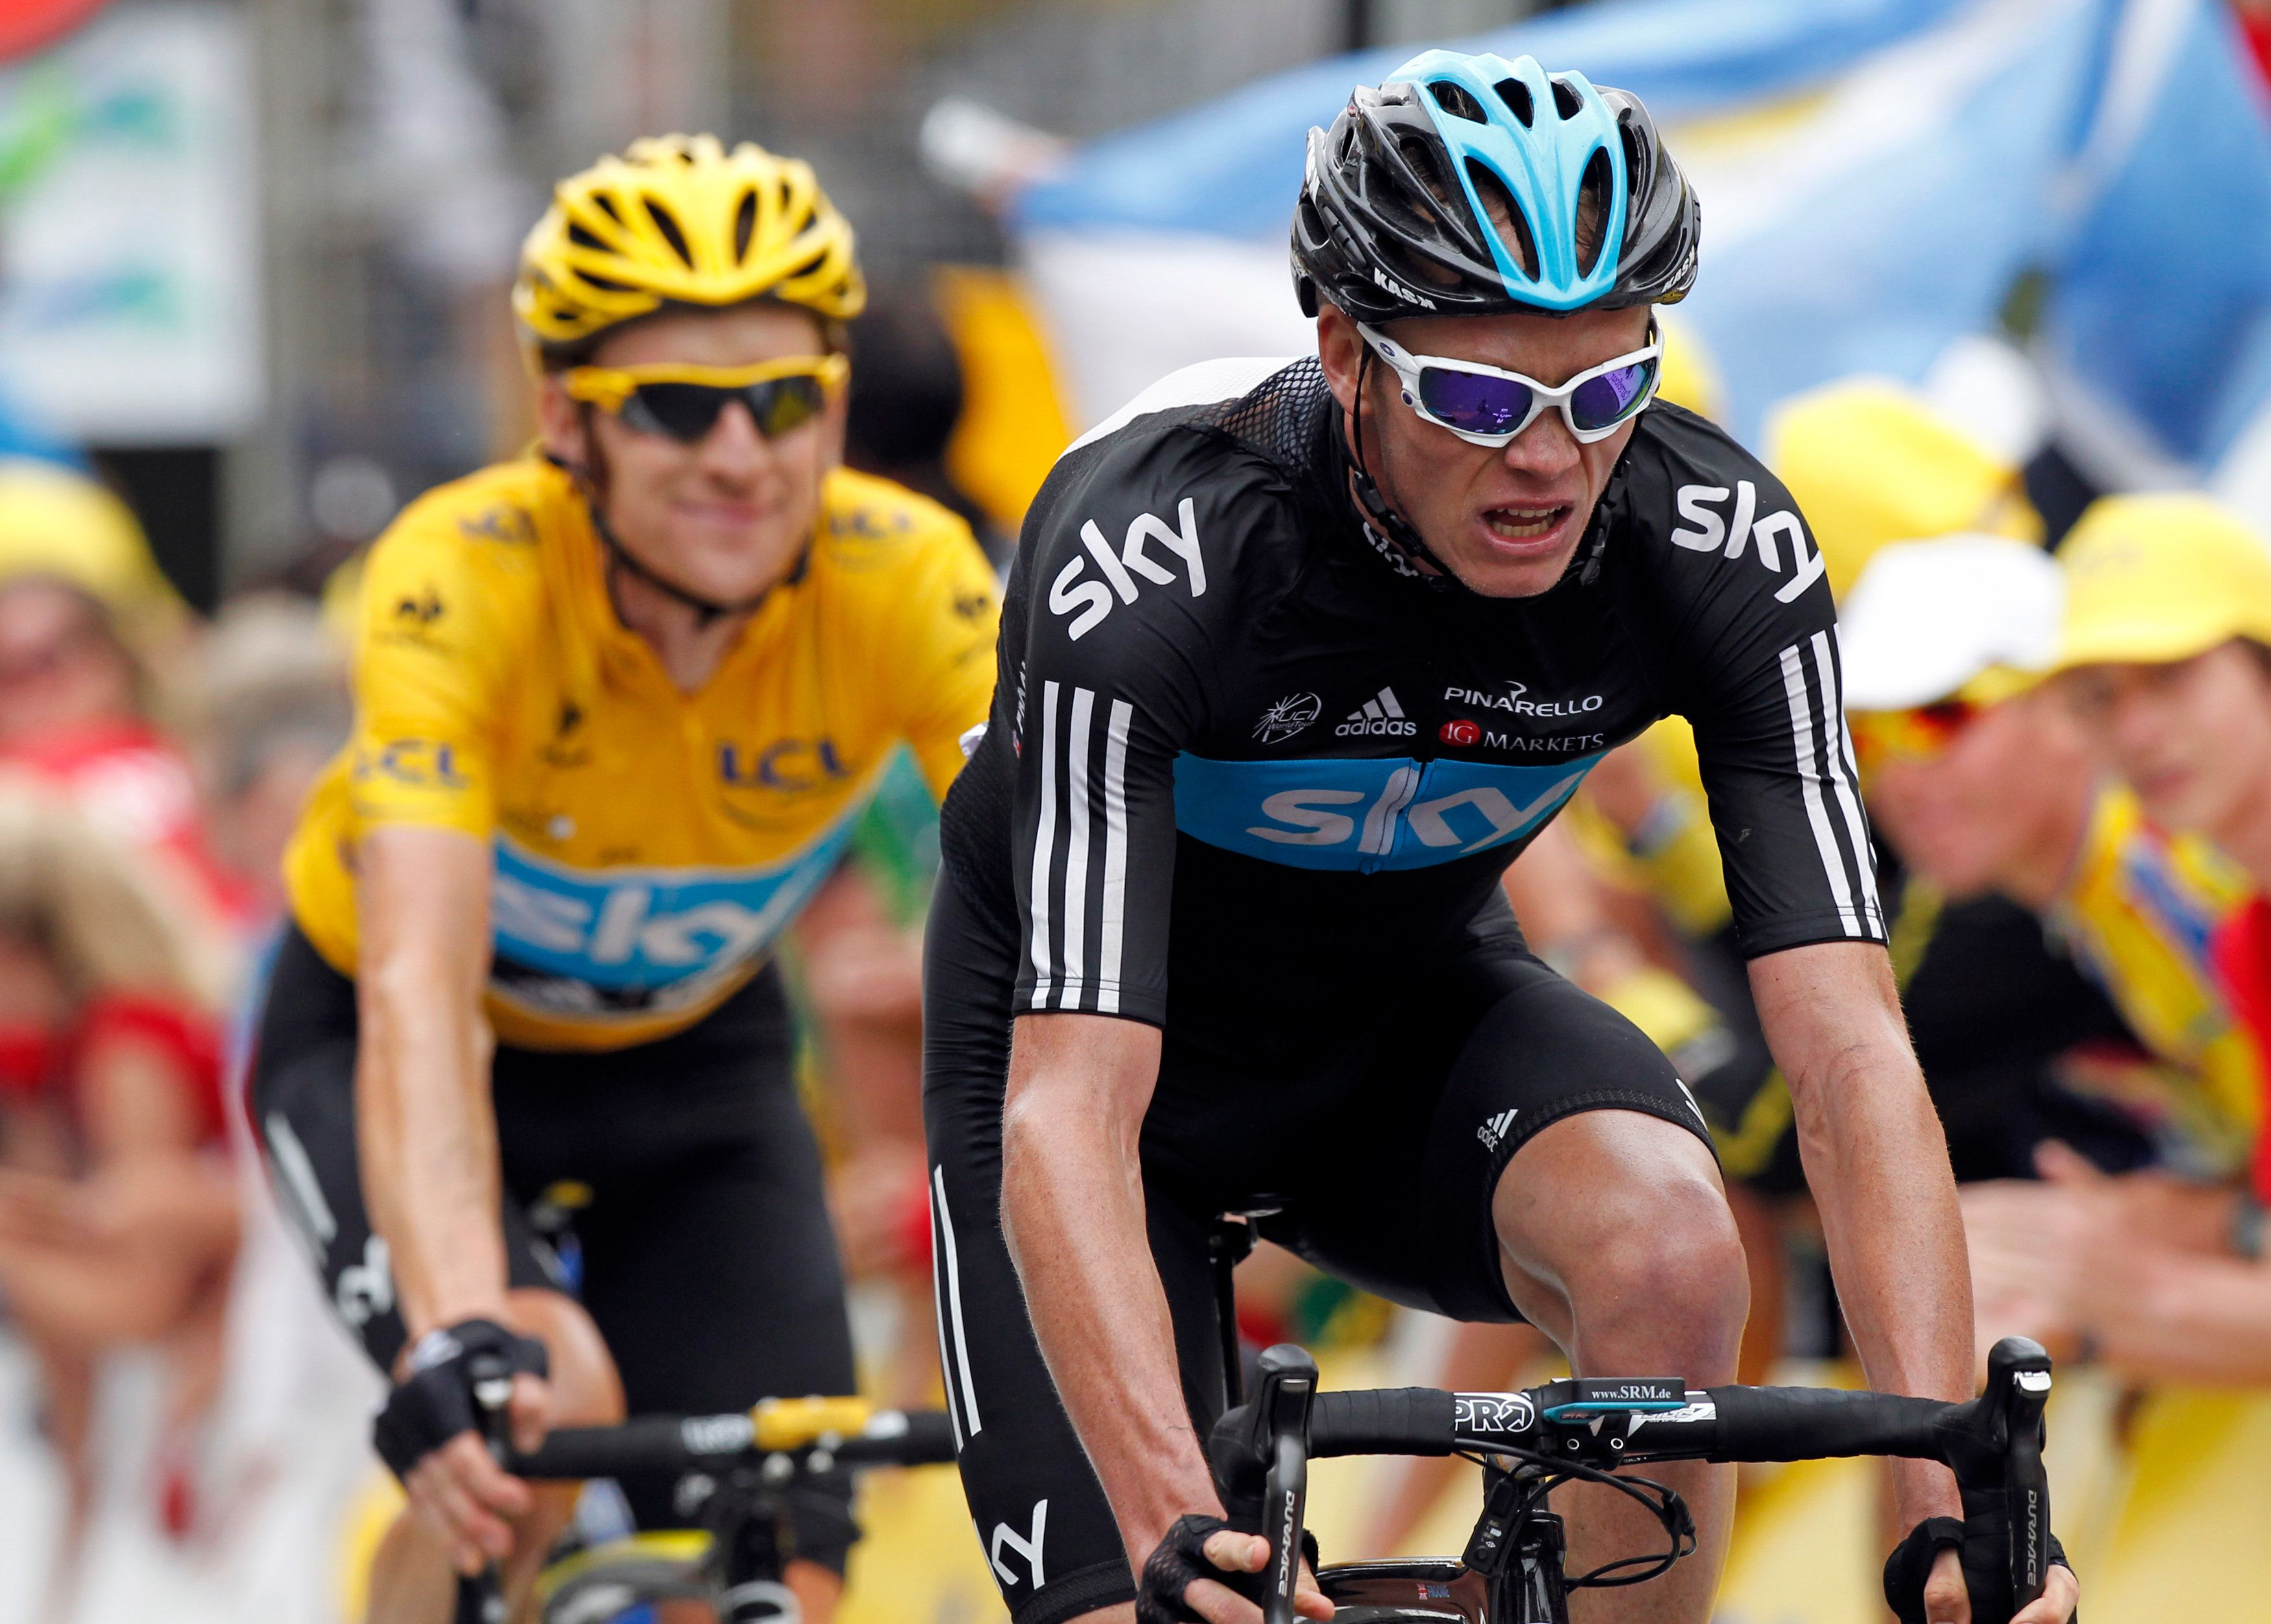 Bradley Wiggins And Chris Froome's Medical Data Leaked In